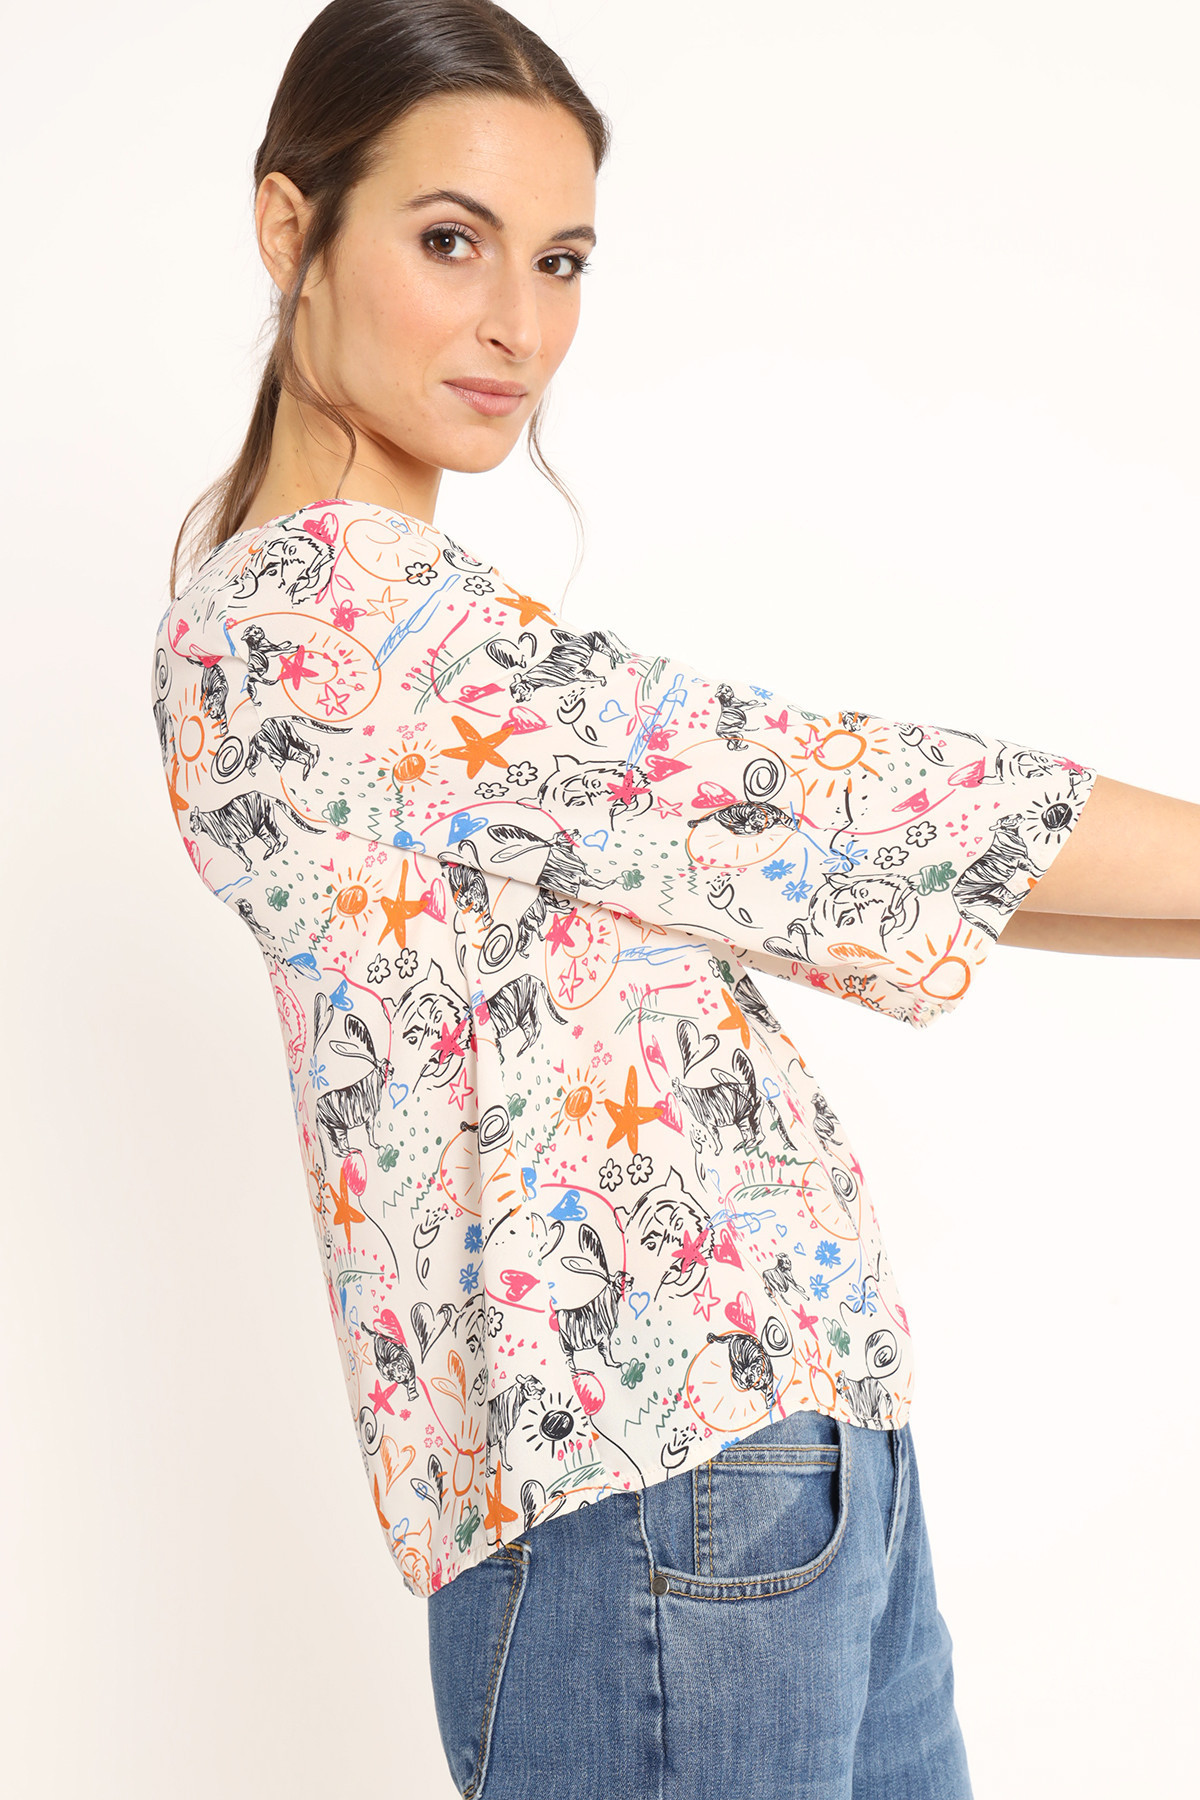 Mural Print Blouse Wide Neckline